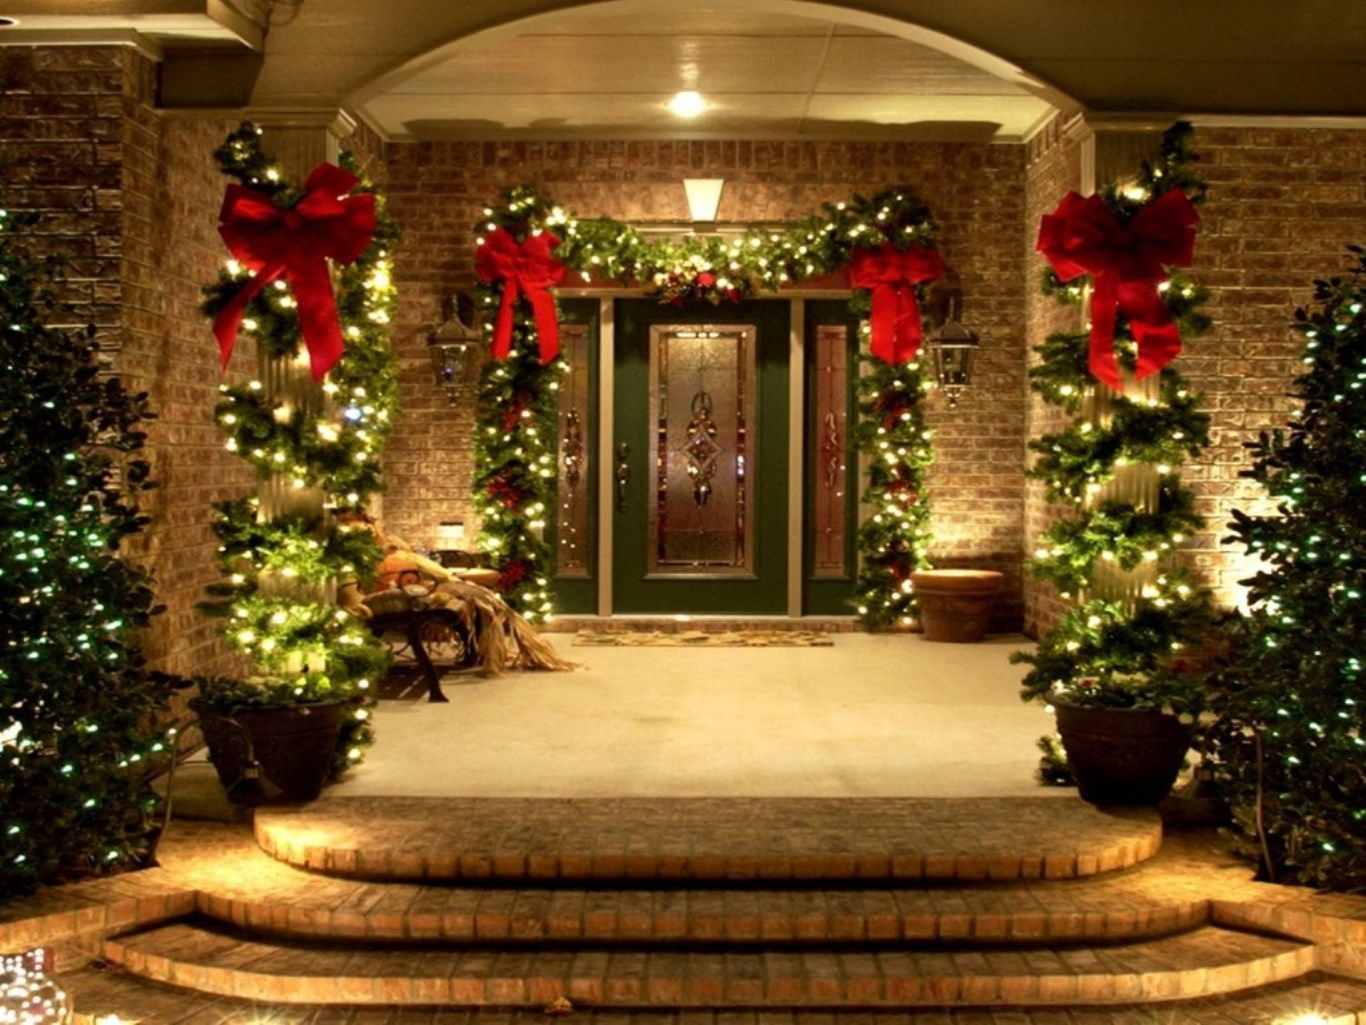 Lights And Garland With Bows Around The Pillars Outdoor Christmas Decorationschristmas Decorating Ideasholiday